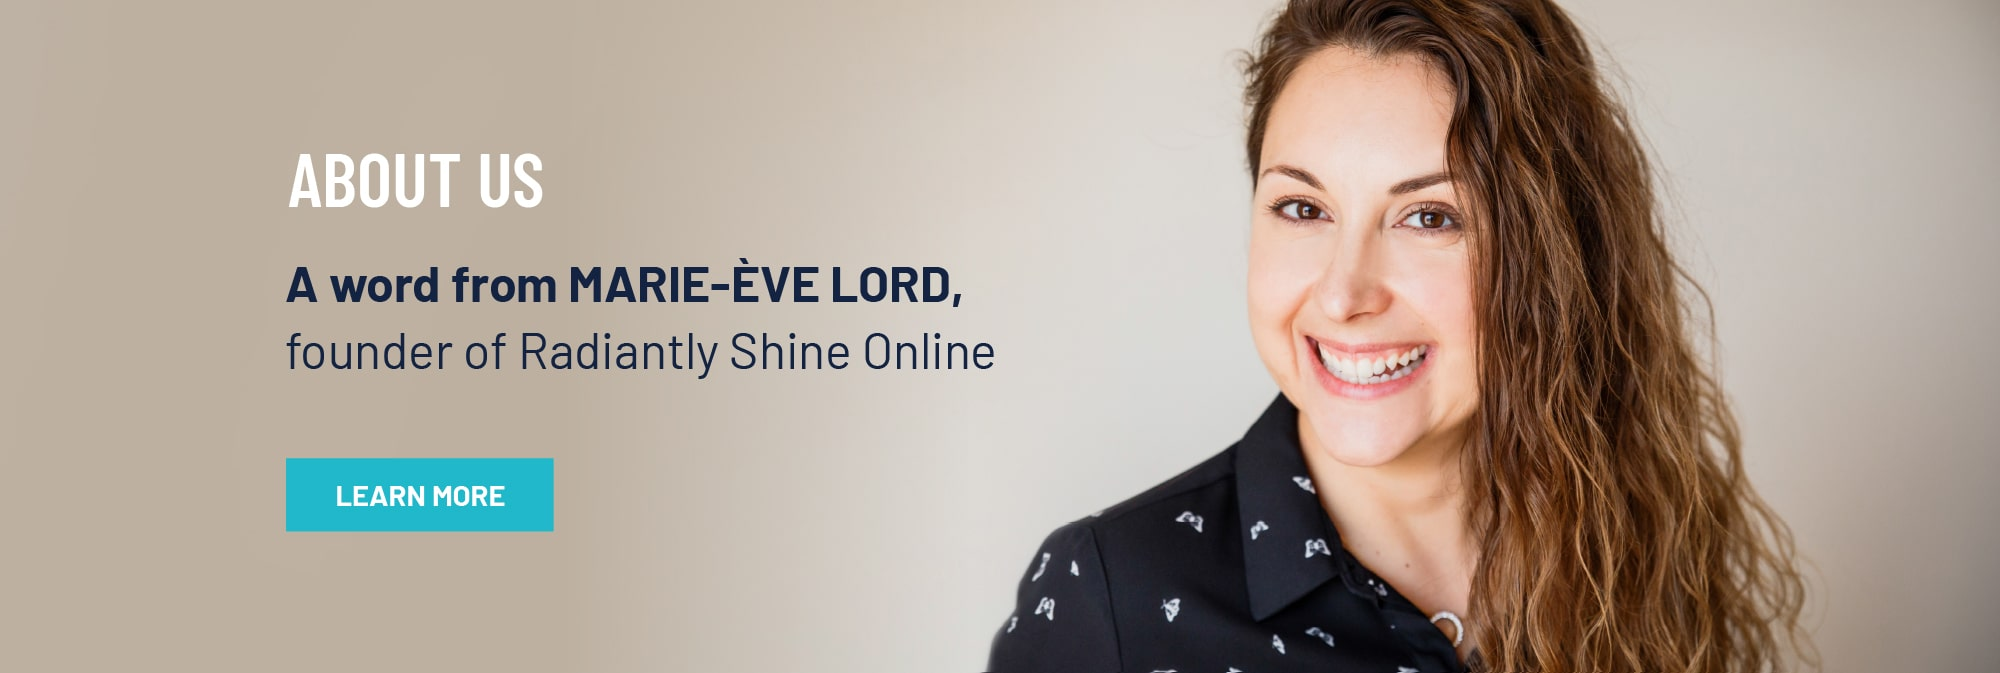 About Us. Marie-Ève Lord, founder of Radiantly Shine Online